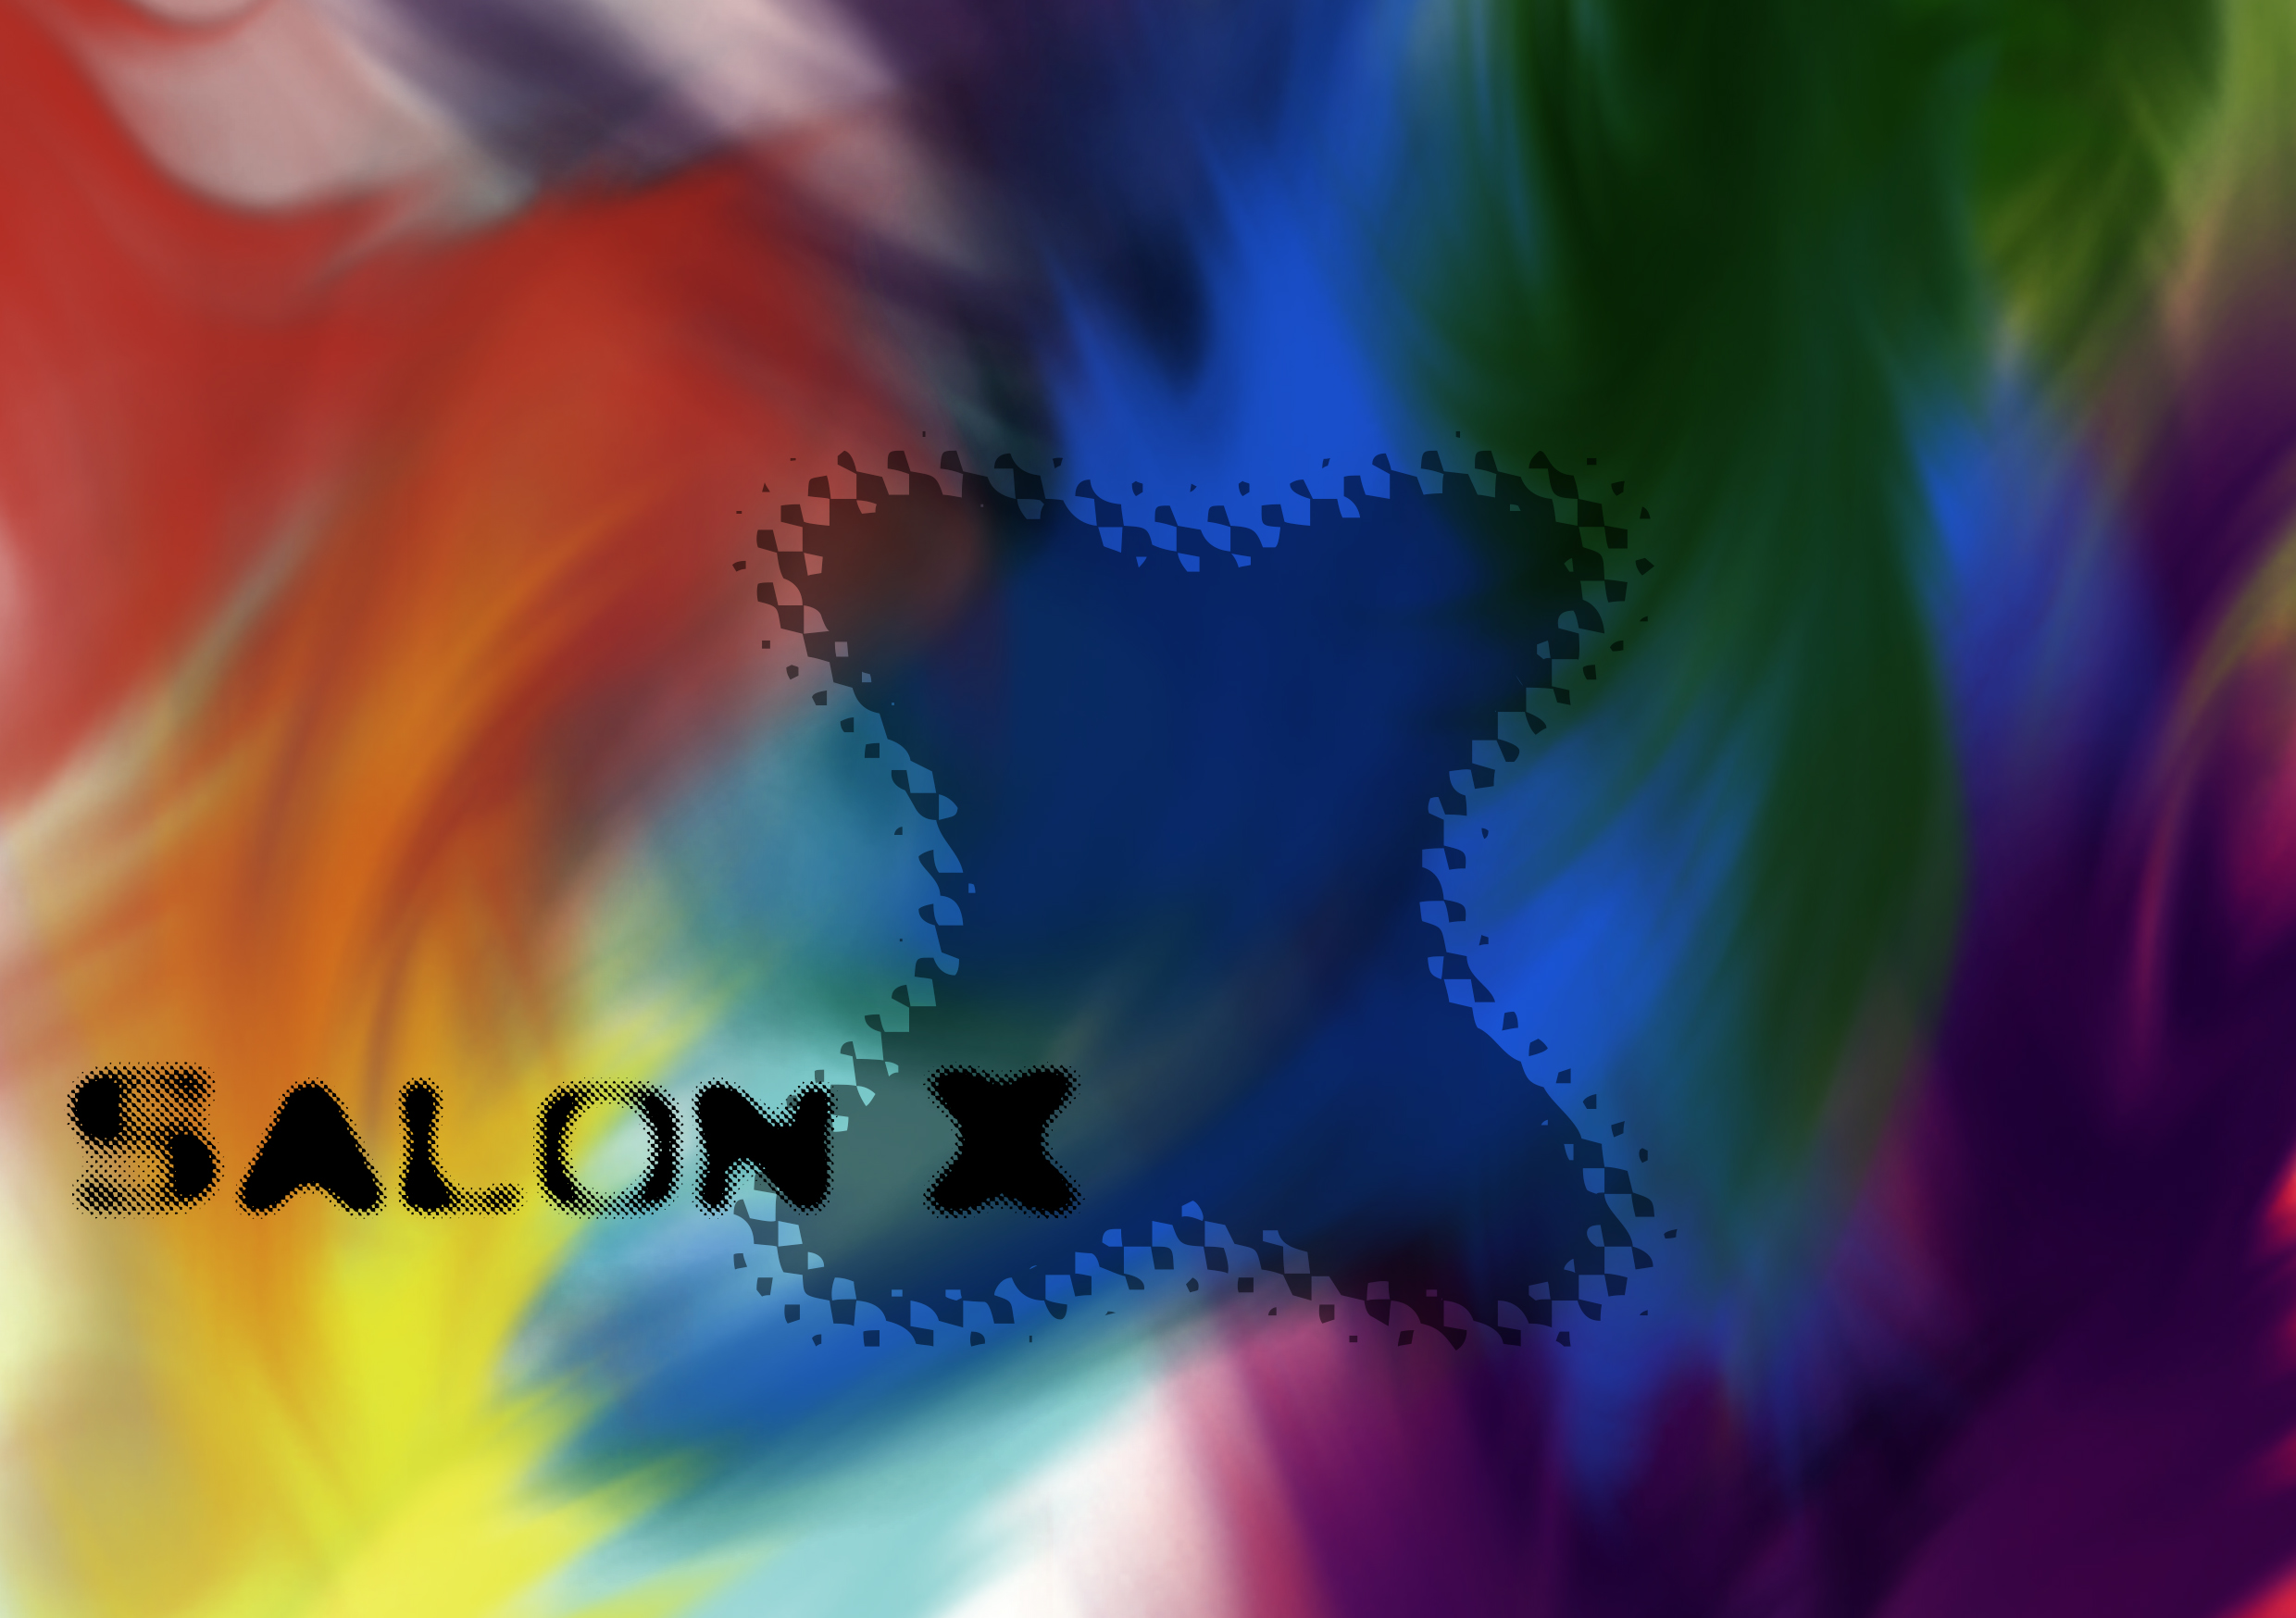 Salon web